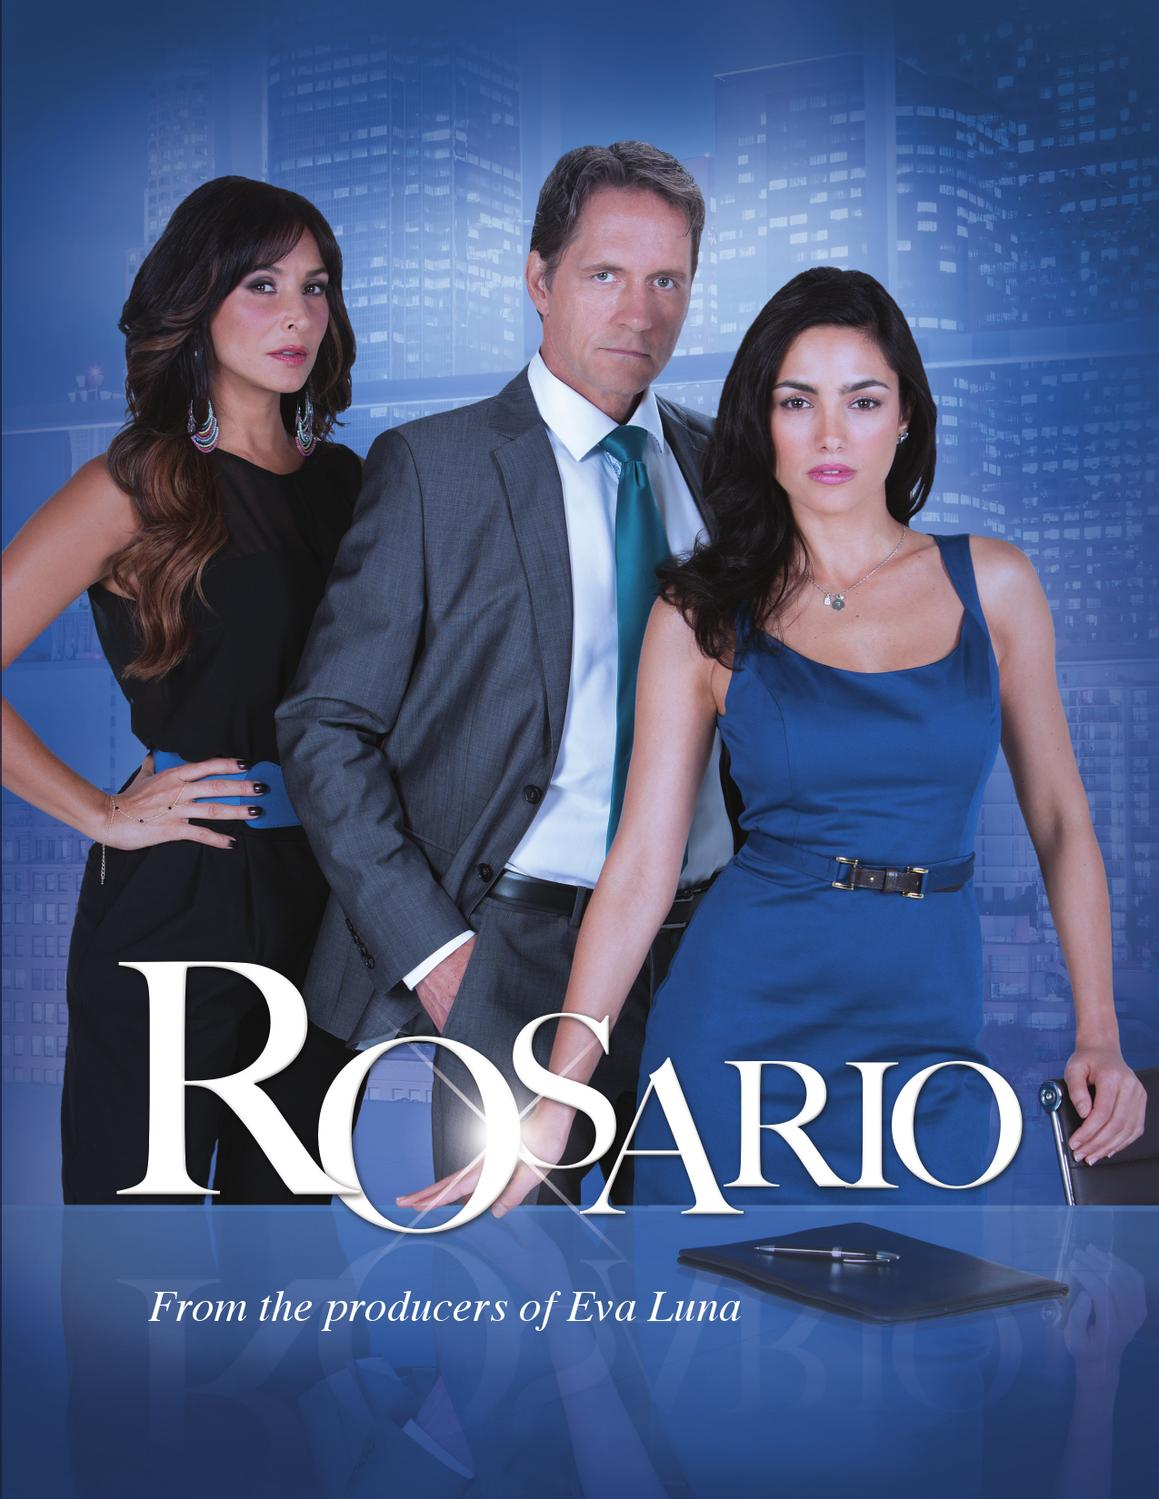 rosario single men Meet thousands of local singles in the rosario, philippines dating area today find your true love at matchmakercom.